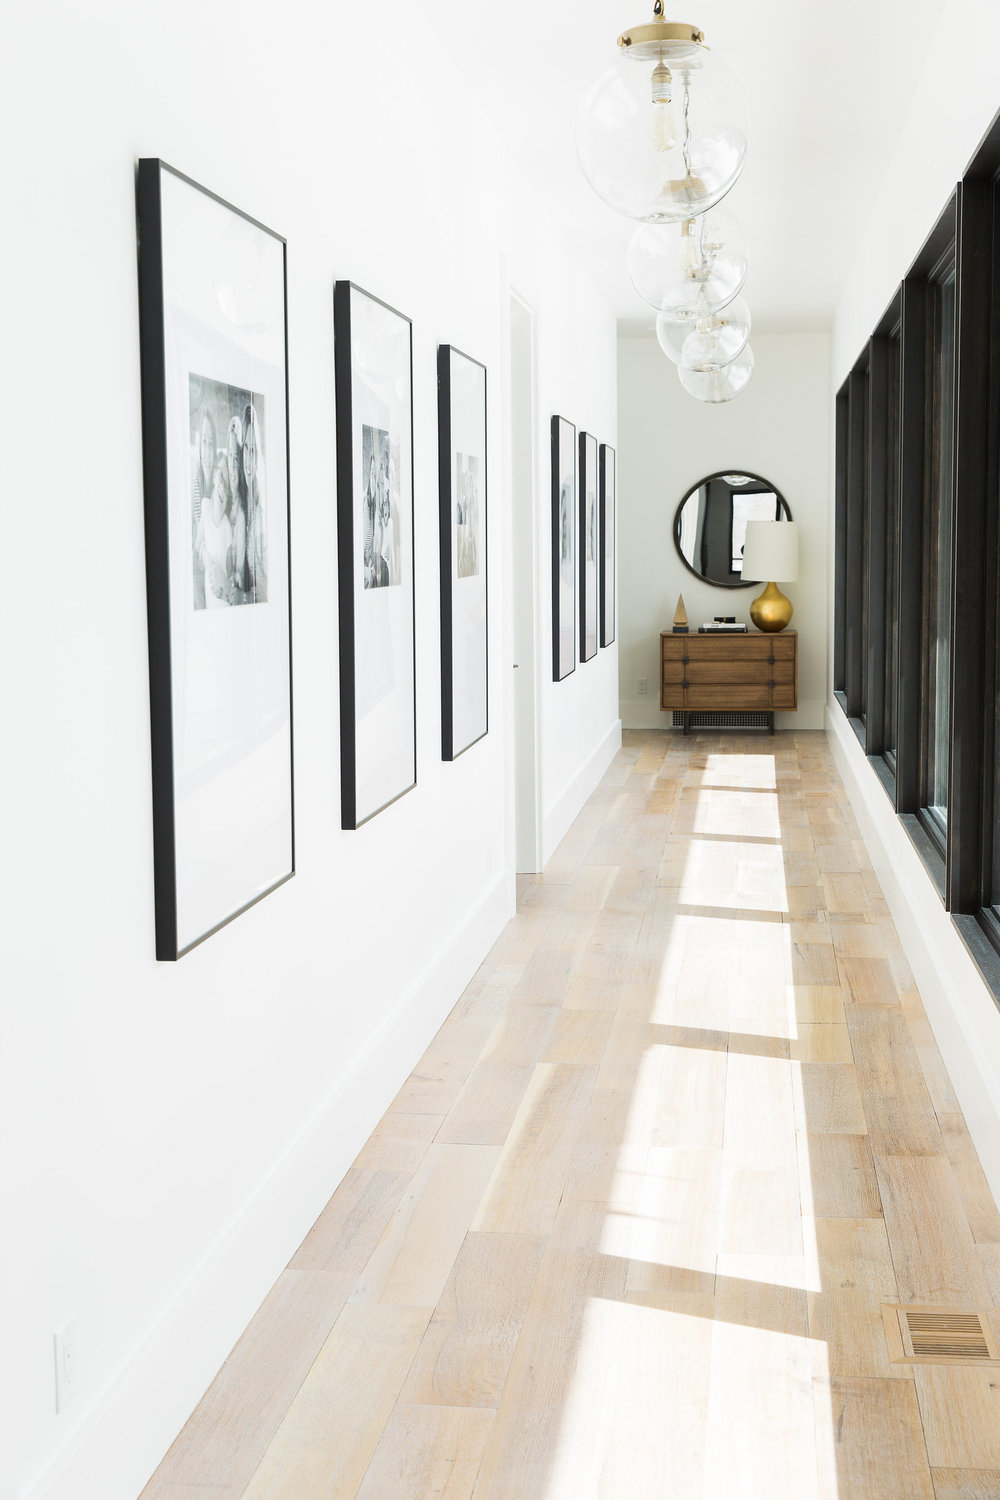 Long hallway with wooden floors